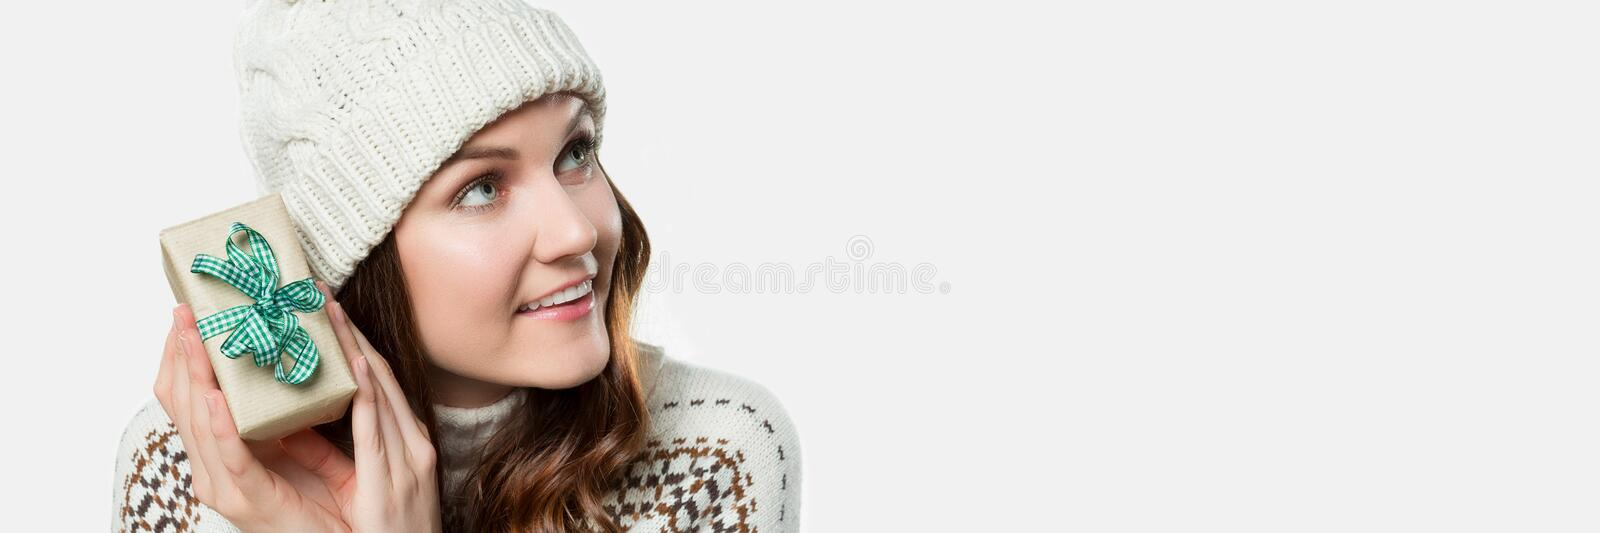 Gorgeous smiling woman holding tiny present. Curiosity Christmas concept banner, isolated royalty free stock photos